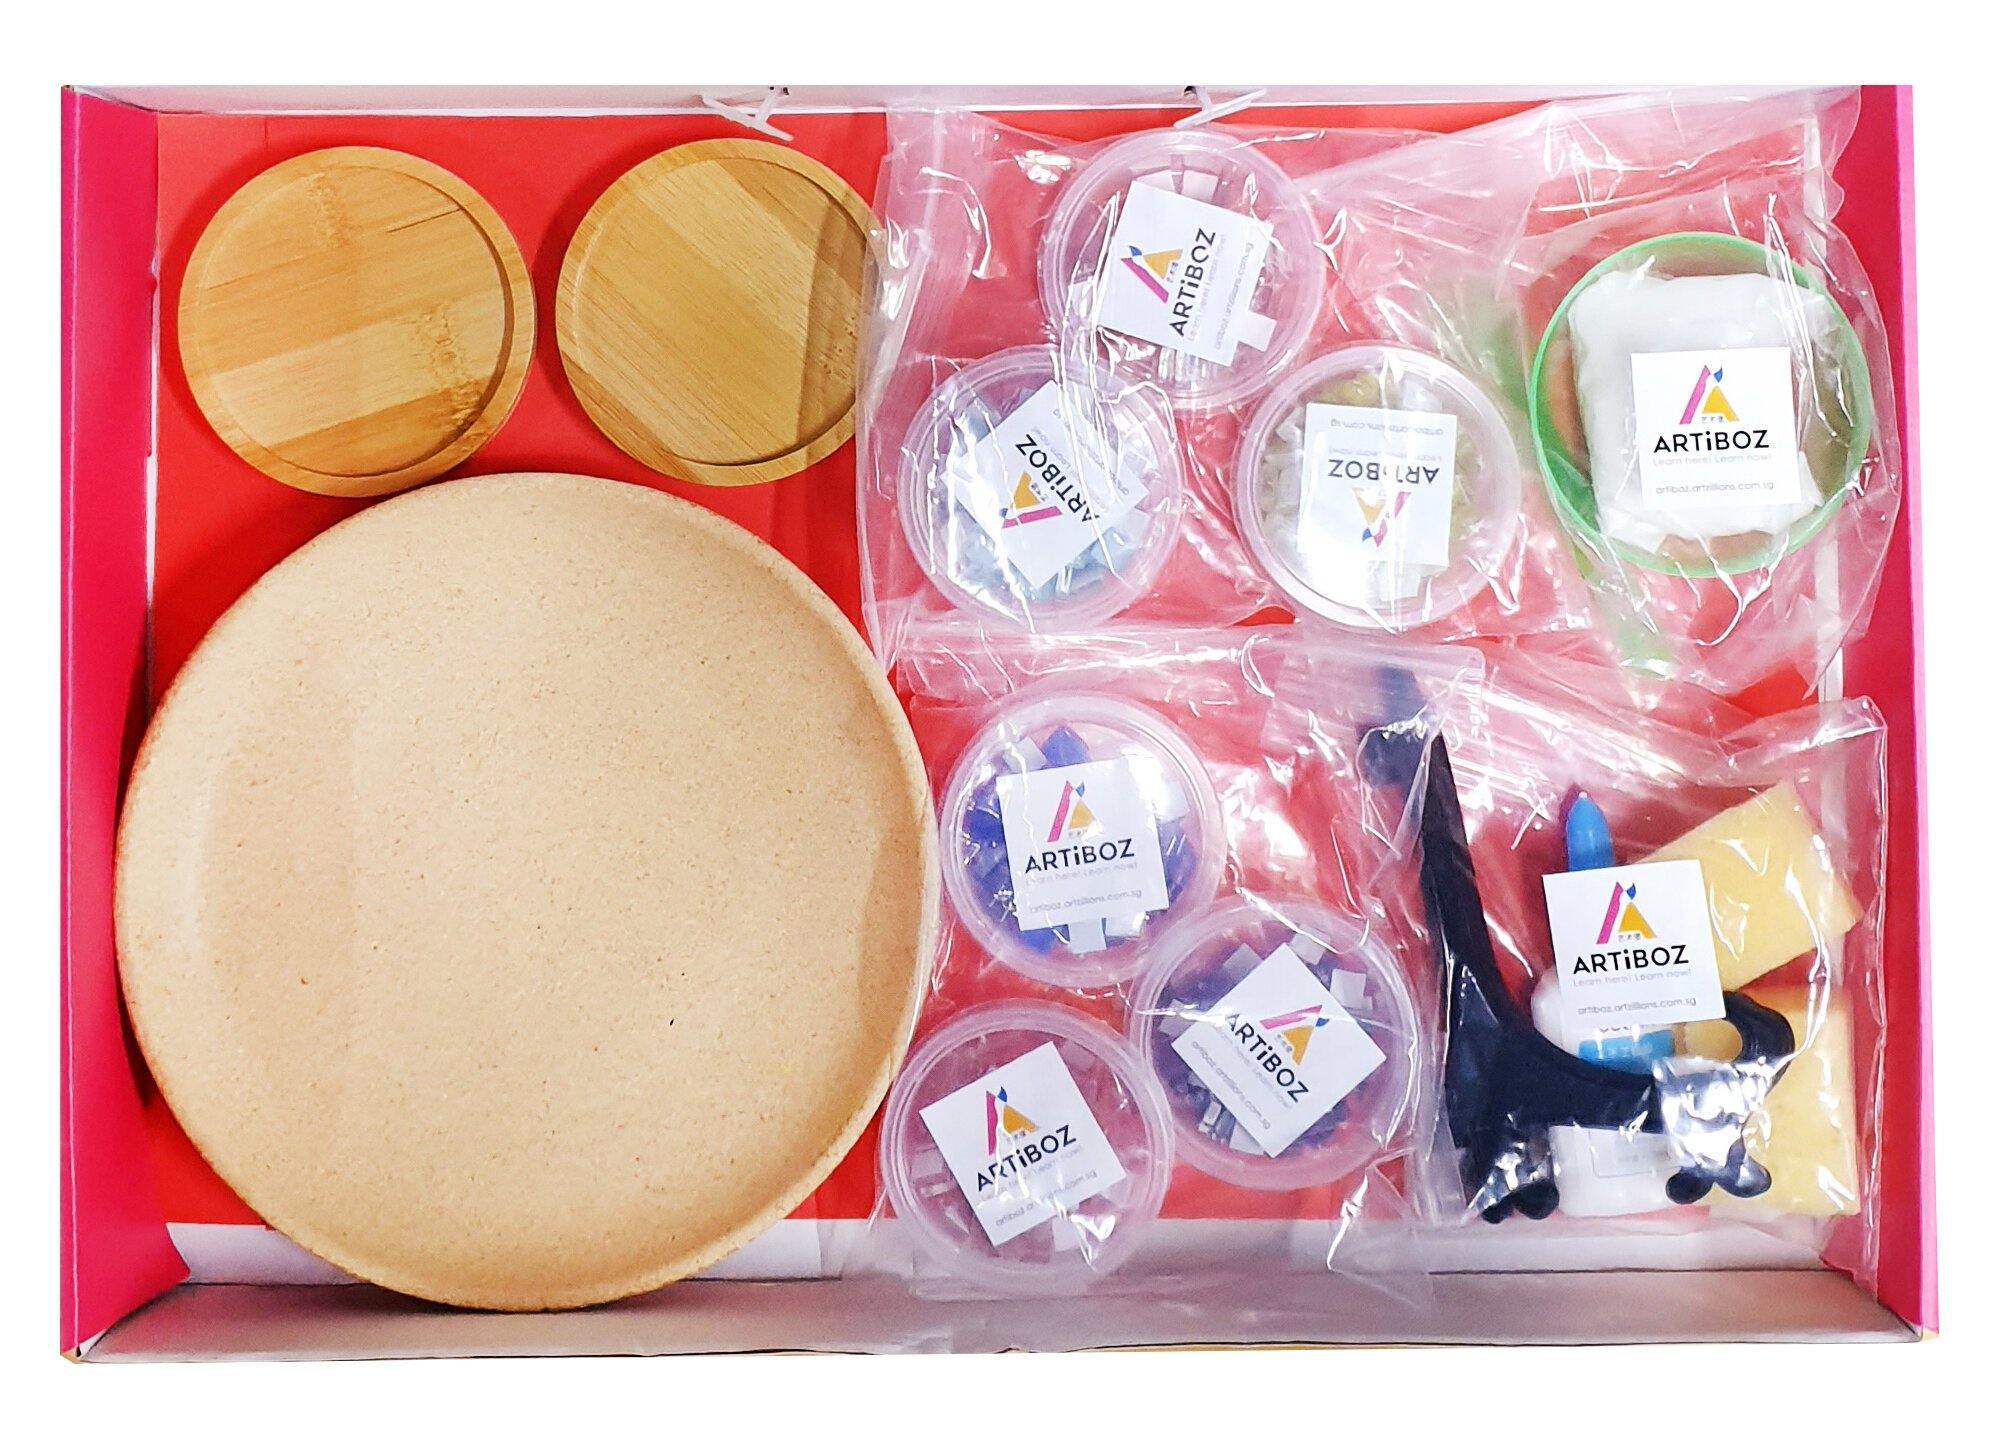 Joyful Art & Craft Box @ Just $49, Delivery Included